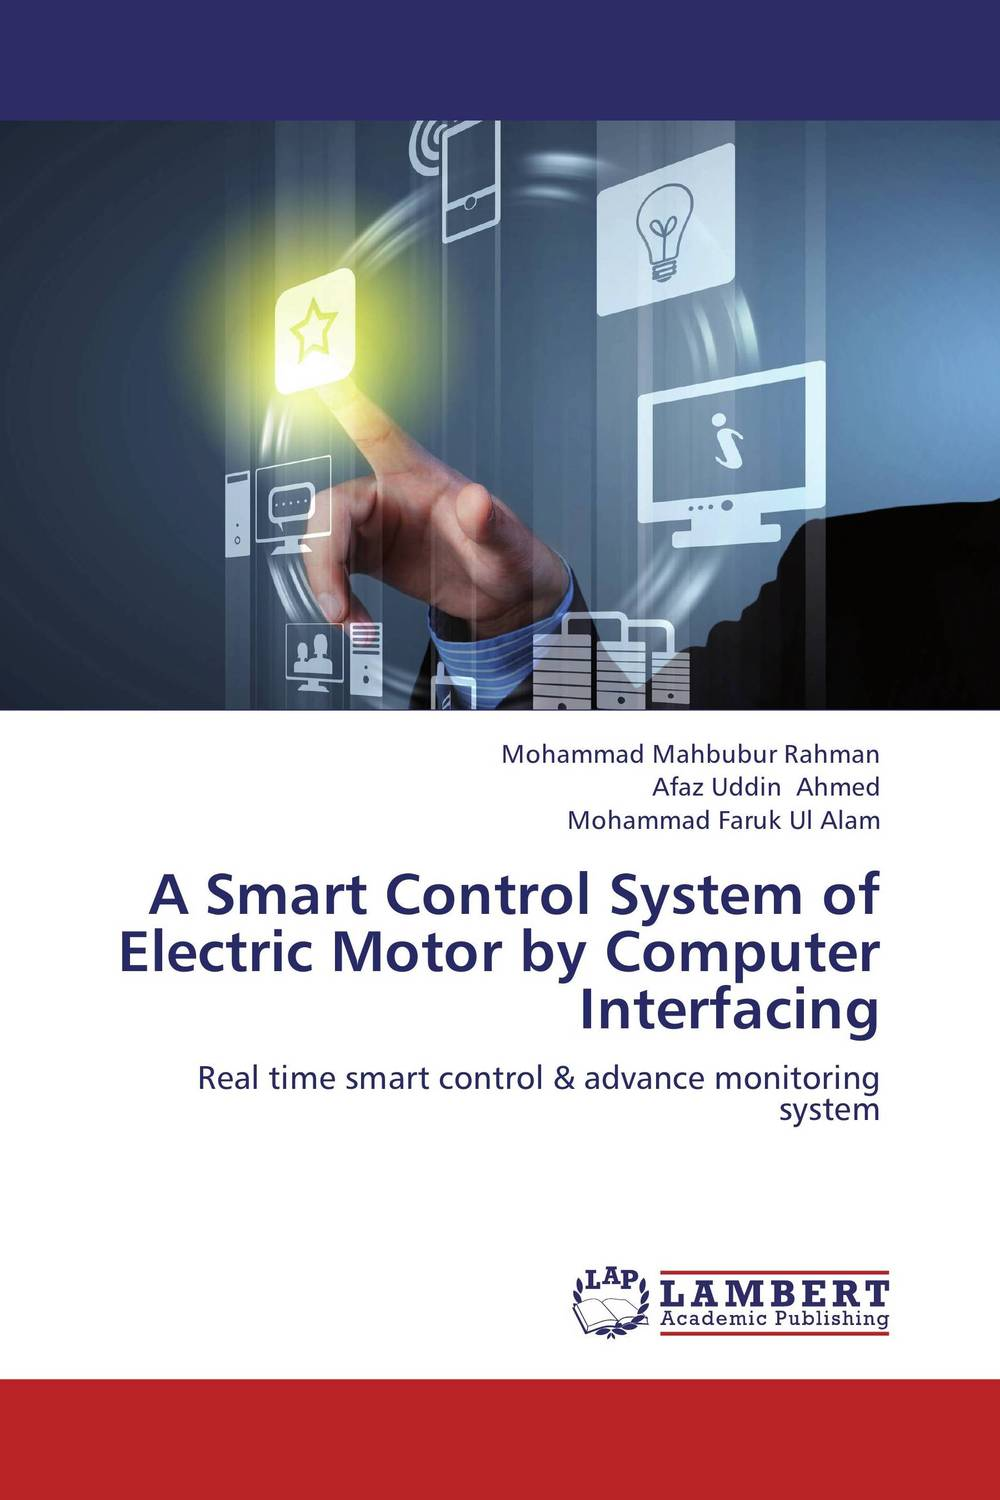 A Smart Control System of Electric Motor by Computer Interfacing peter nash effective product control controlling for trading desks